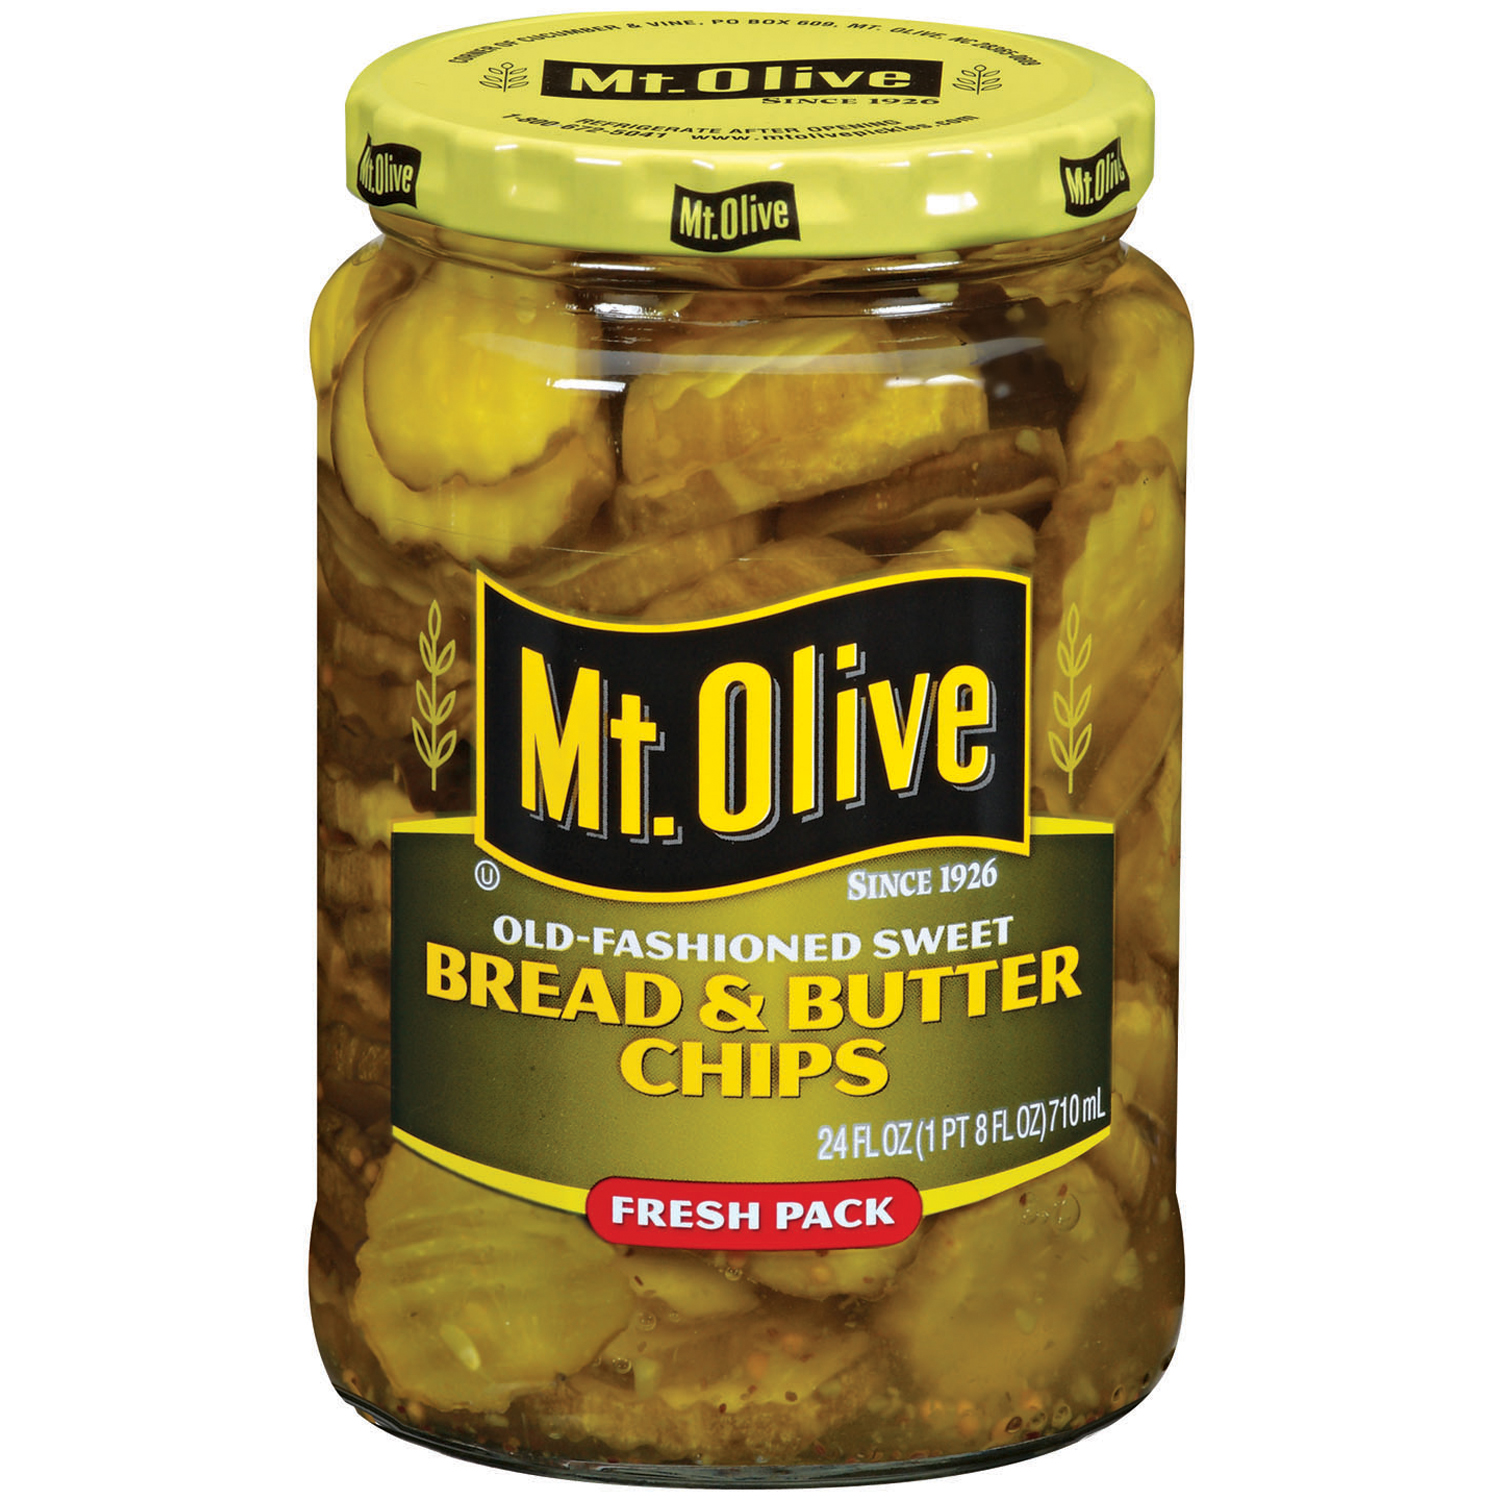 Mt. Olive Bread & Butter Chips Old Fashioned Sweet Fresh Pack Pickles 24 fl. oz. Jar by Generic